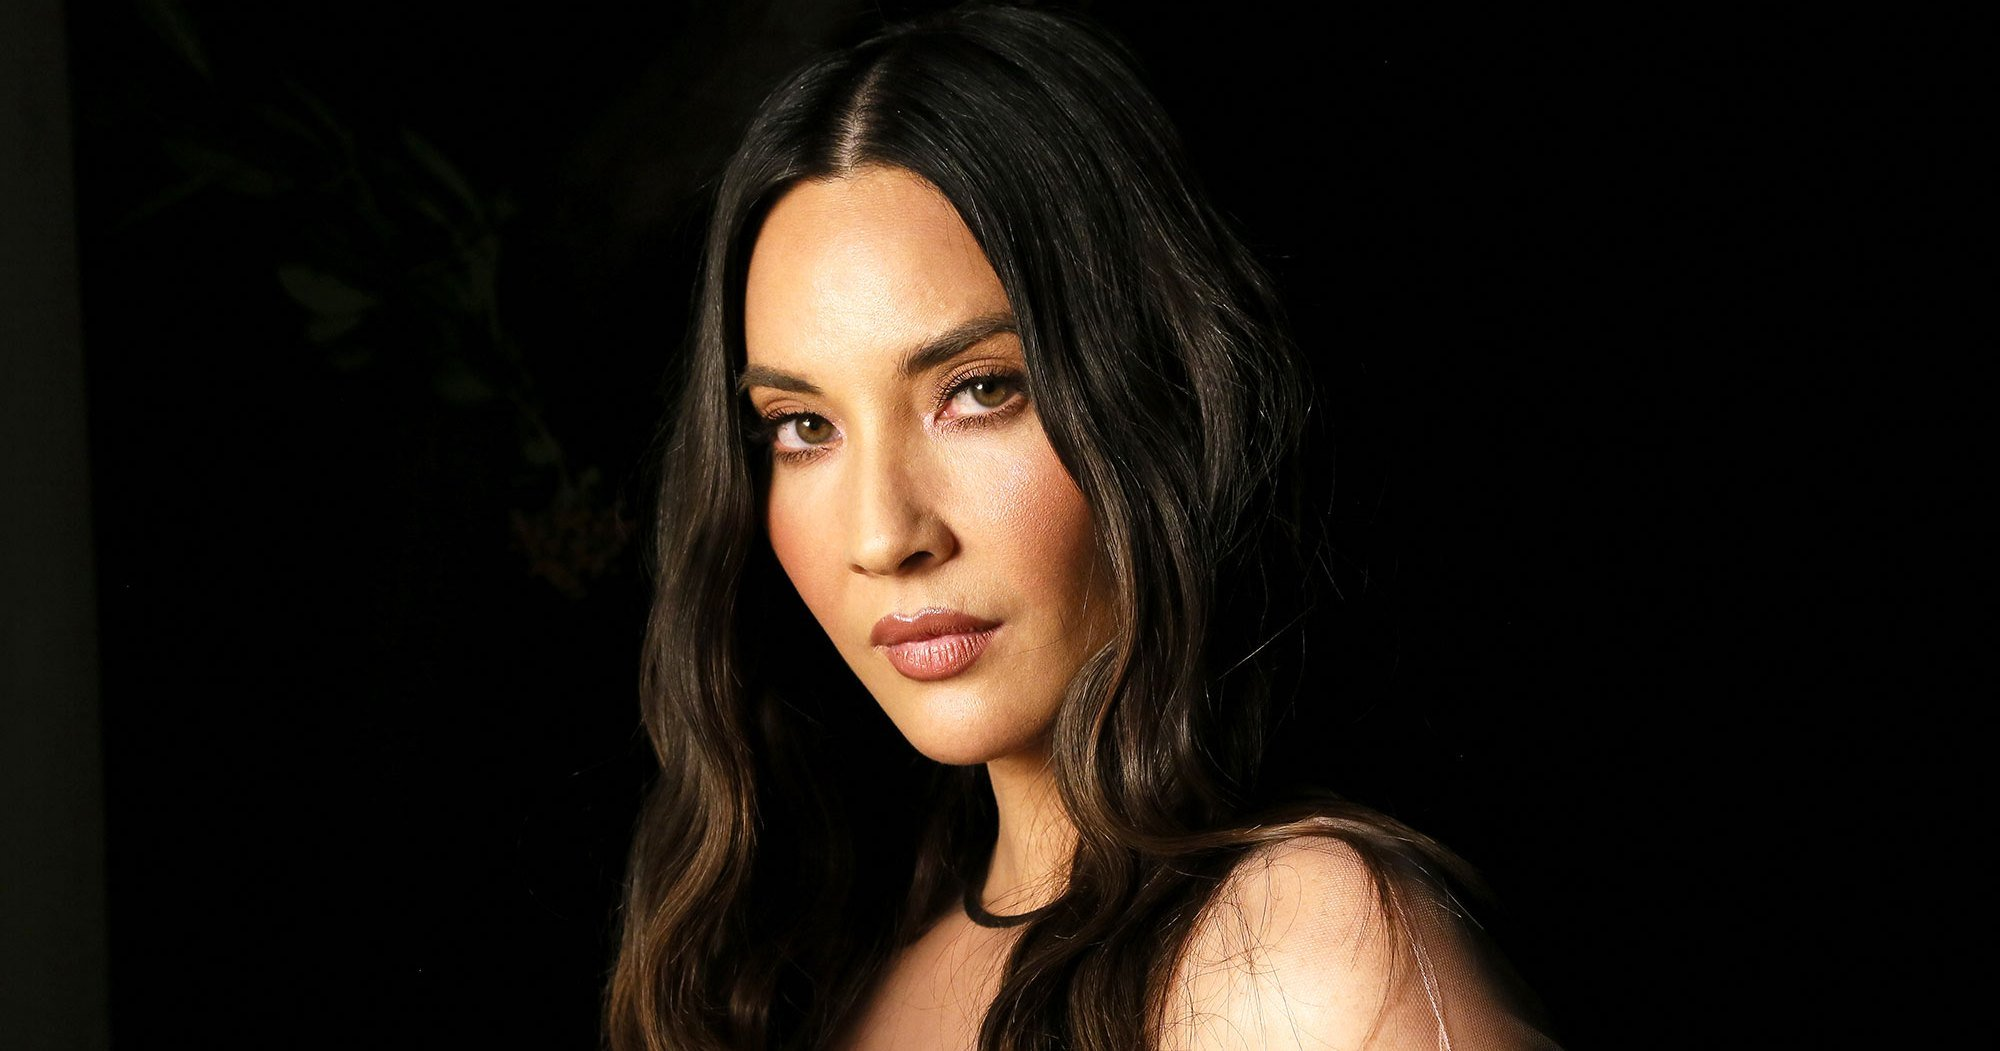 Olivia Munn Opens Up About 'Predator' Scandal and #MeToo Movement